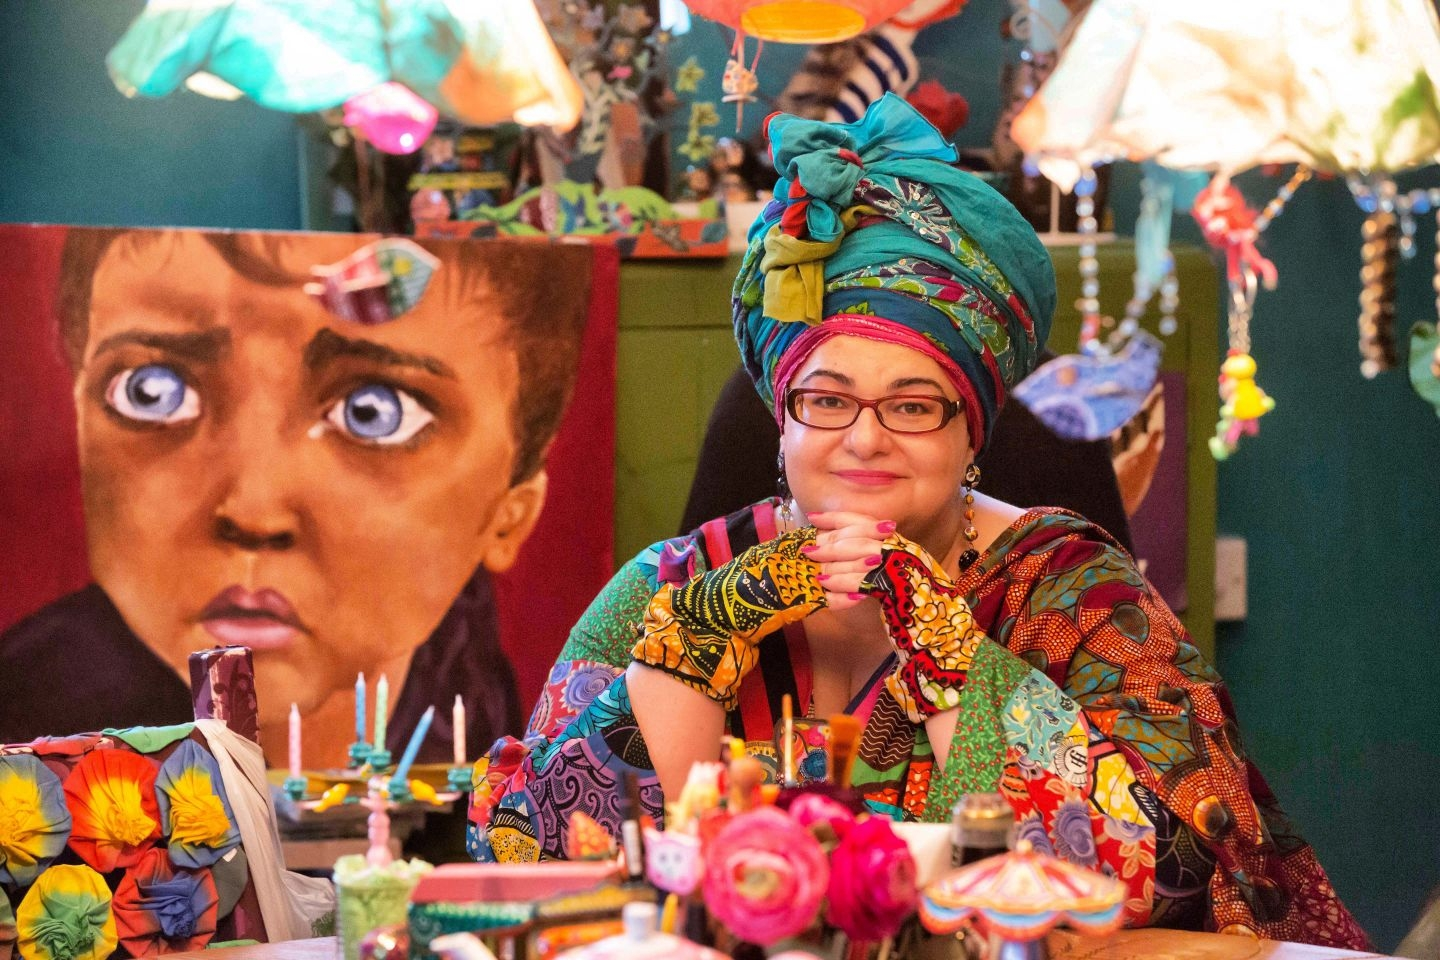 Camila Batmanghelidjh and Kids Company